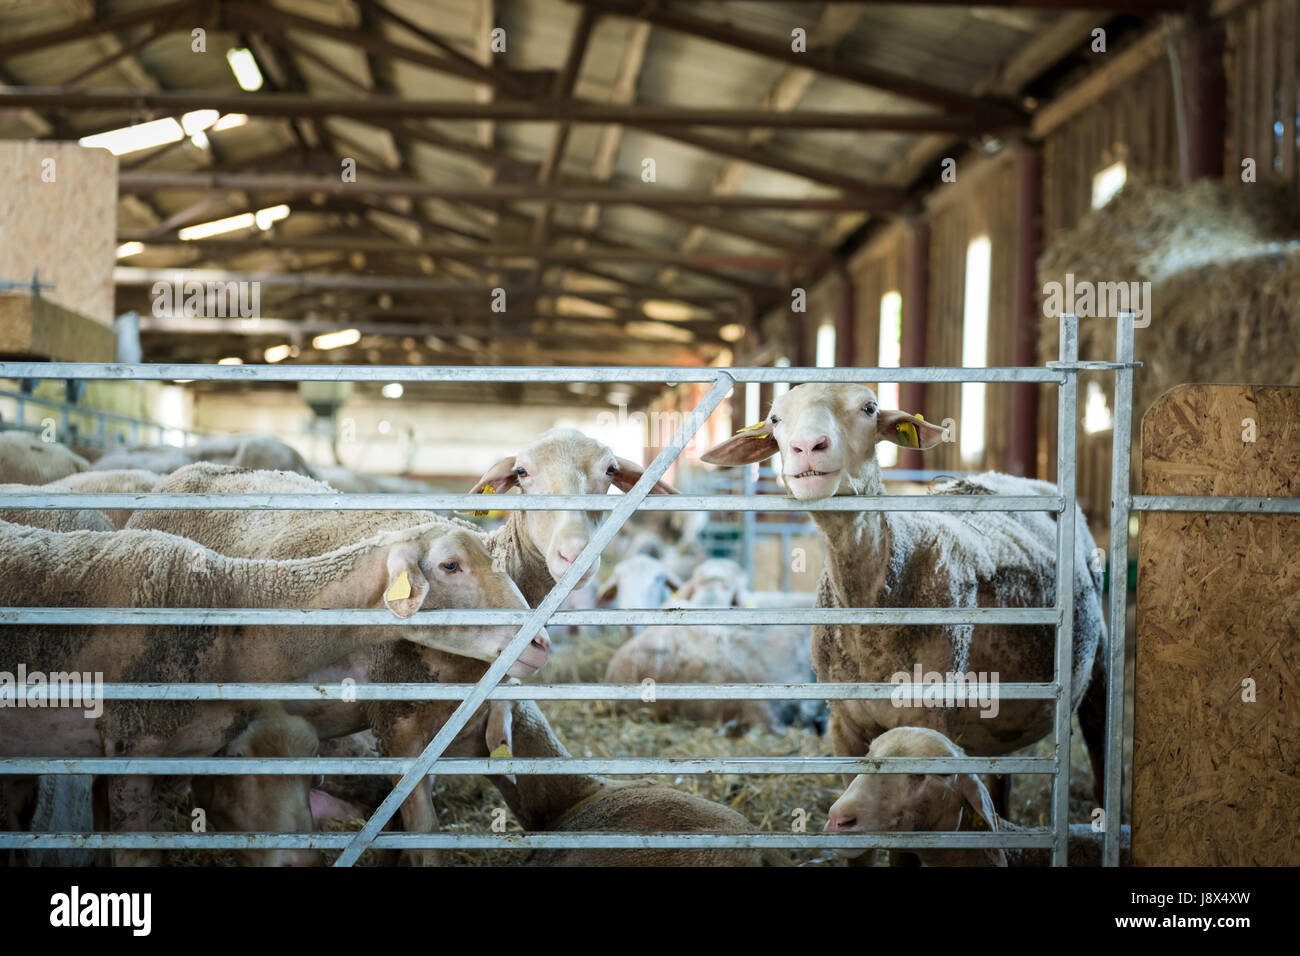 Flock of sheep feeding on hay, agriculture industry, farming and husbandry concept Stock Photo